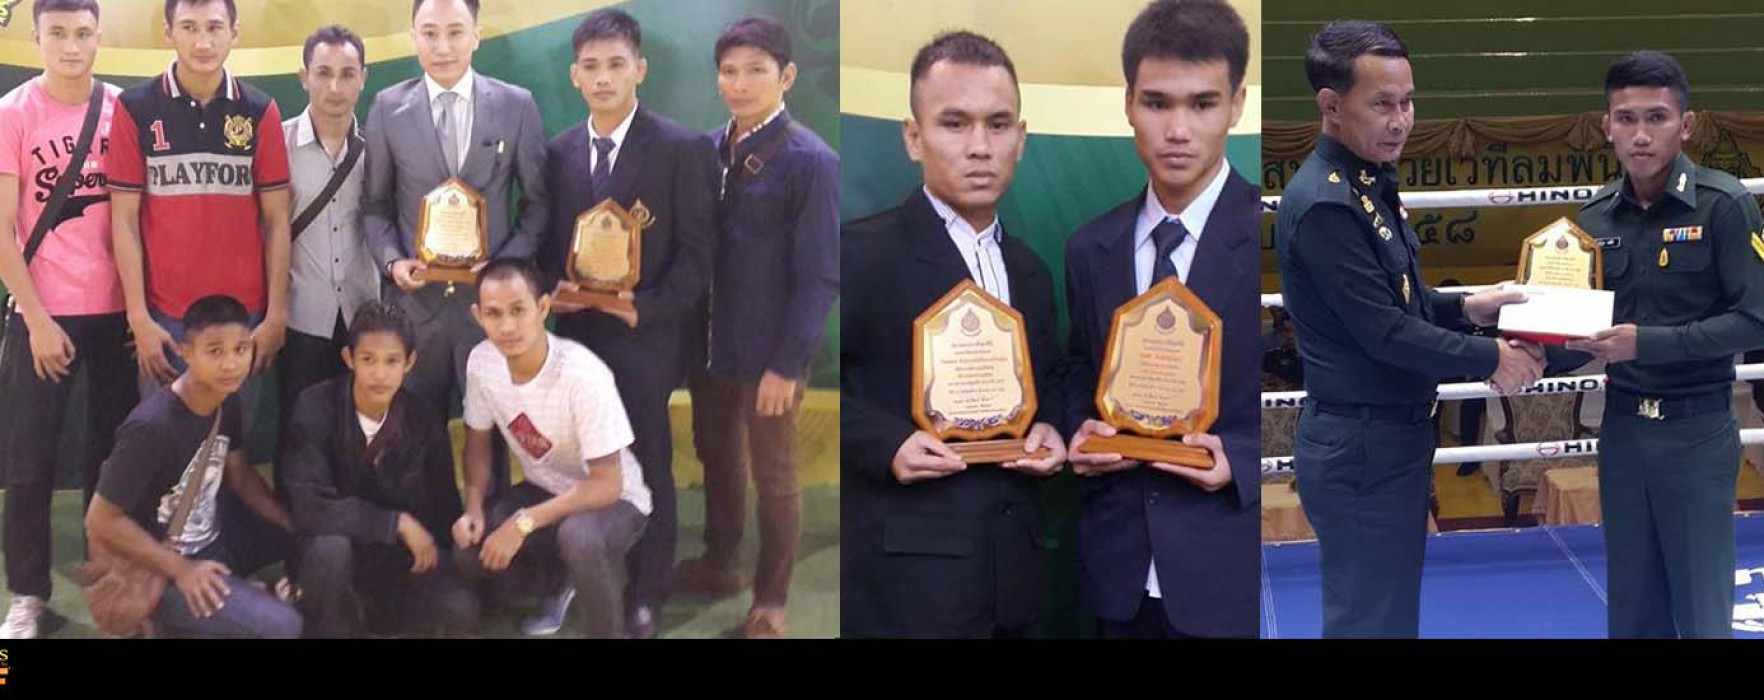 Video: Wanchalong vs Chaisiri awarded as fight of the year at Lumpinee St. awards 2014